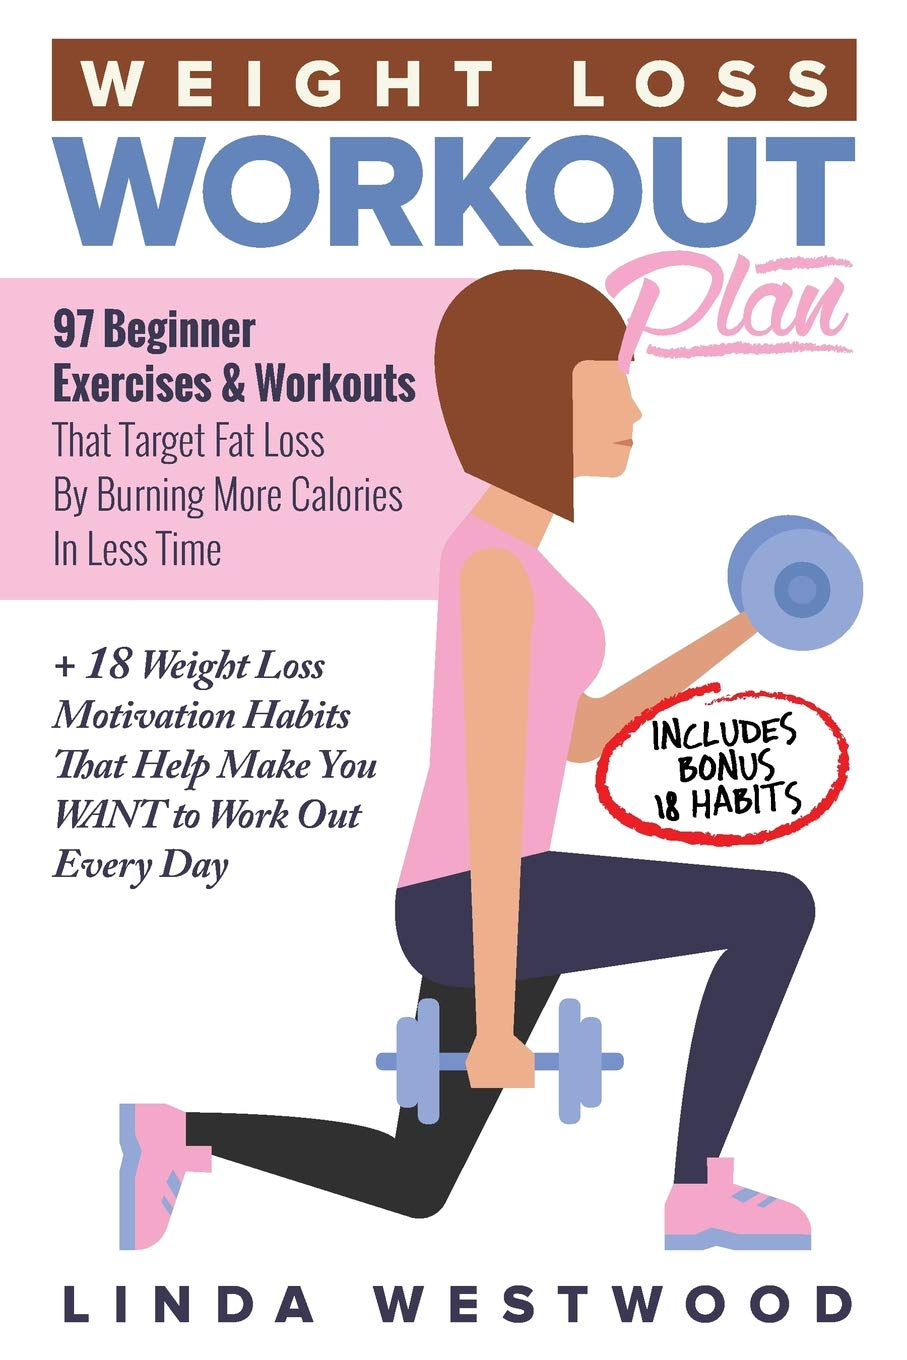 Weight Loss Workout Plan: 97 Beginner Exercises & Workouts That Target Fat  Loss By Burning More Calories In Less Time + 18 Weight Loss Motivation  Habits That Help Make You WANT to